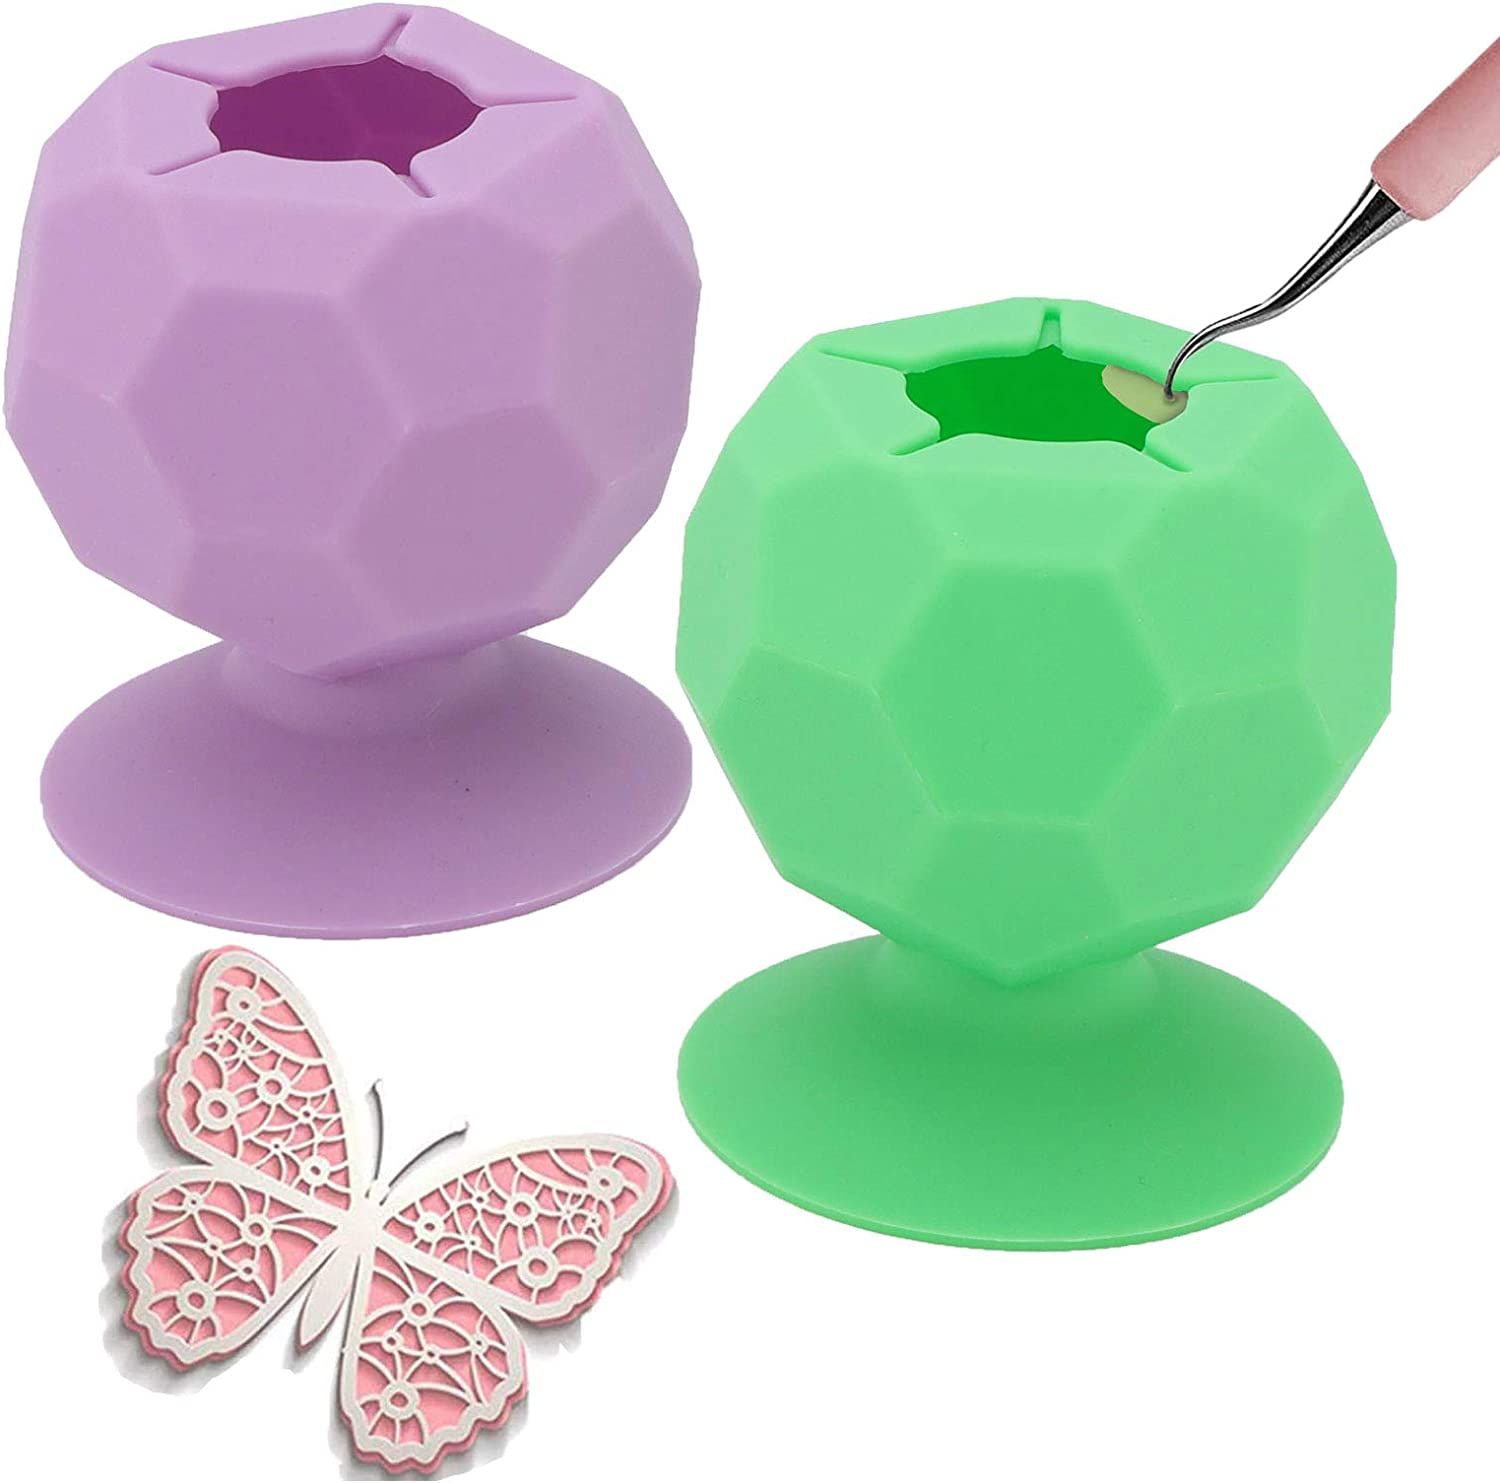 julycofe 2 Pack Suctioned Vinyl Limited price Weeding Collector Max 41% OFF Scrap Silicon